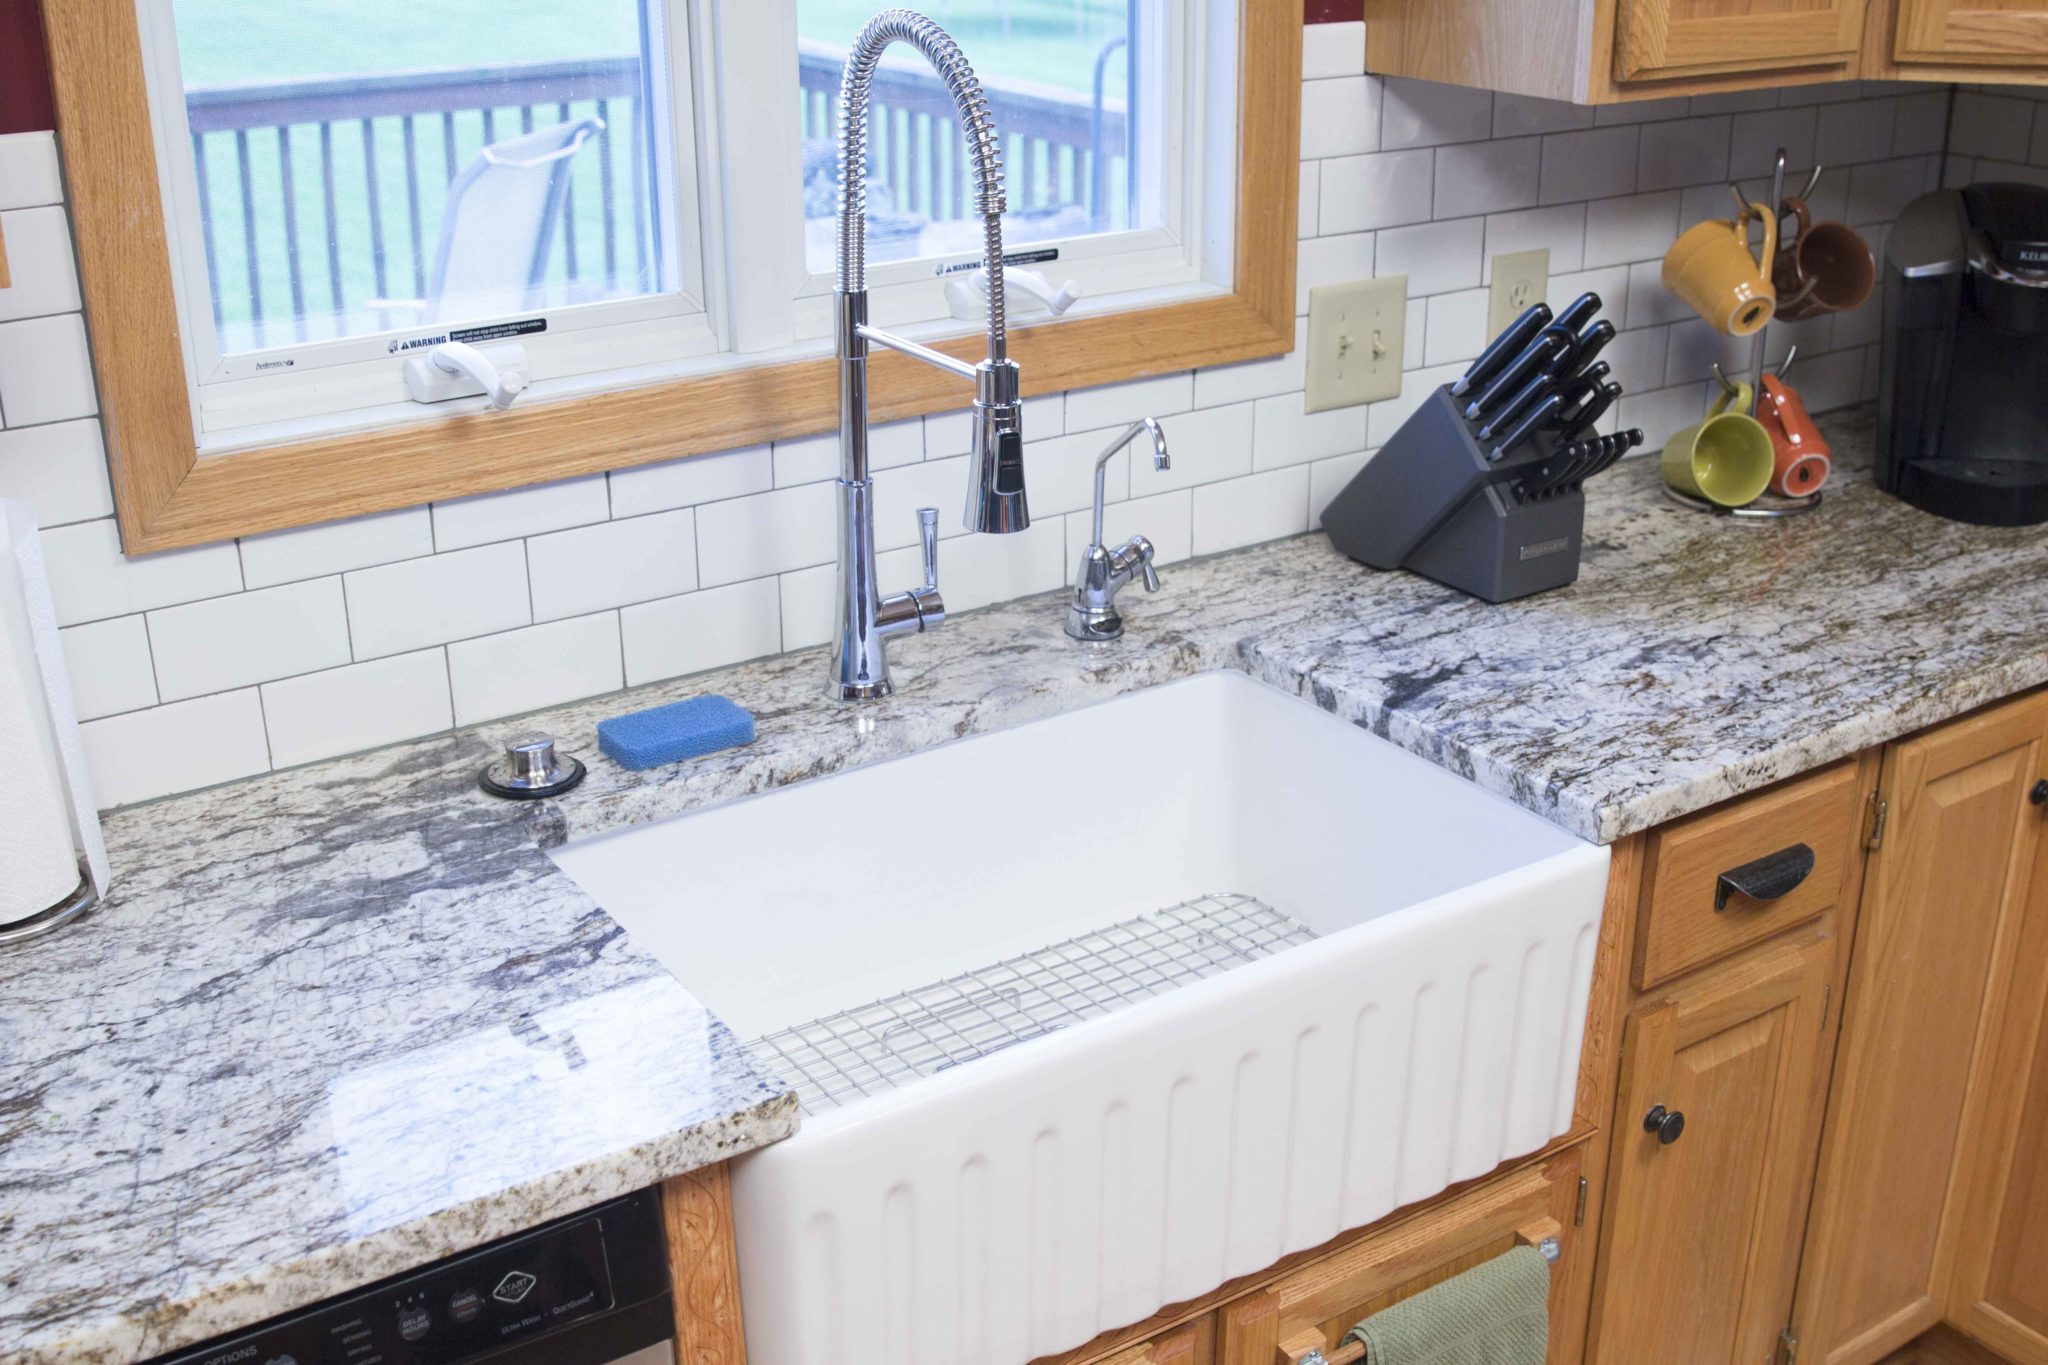 Before And After A New Fireclay Farmhouse Kitchen Sink